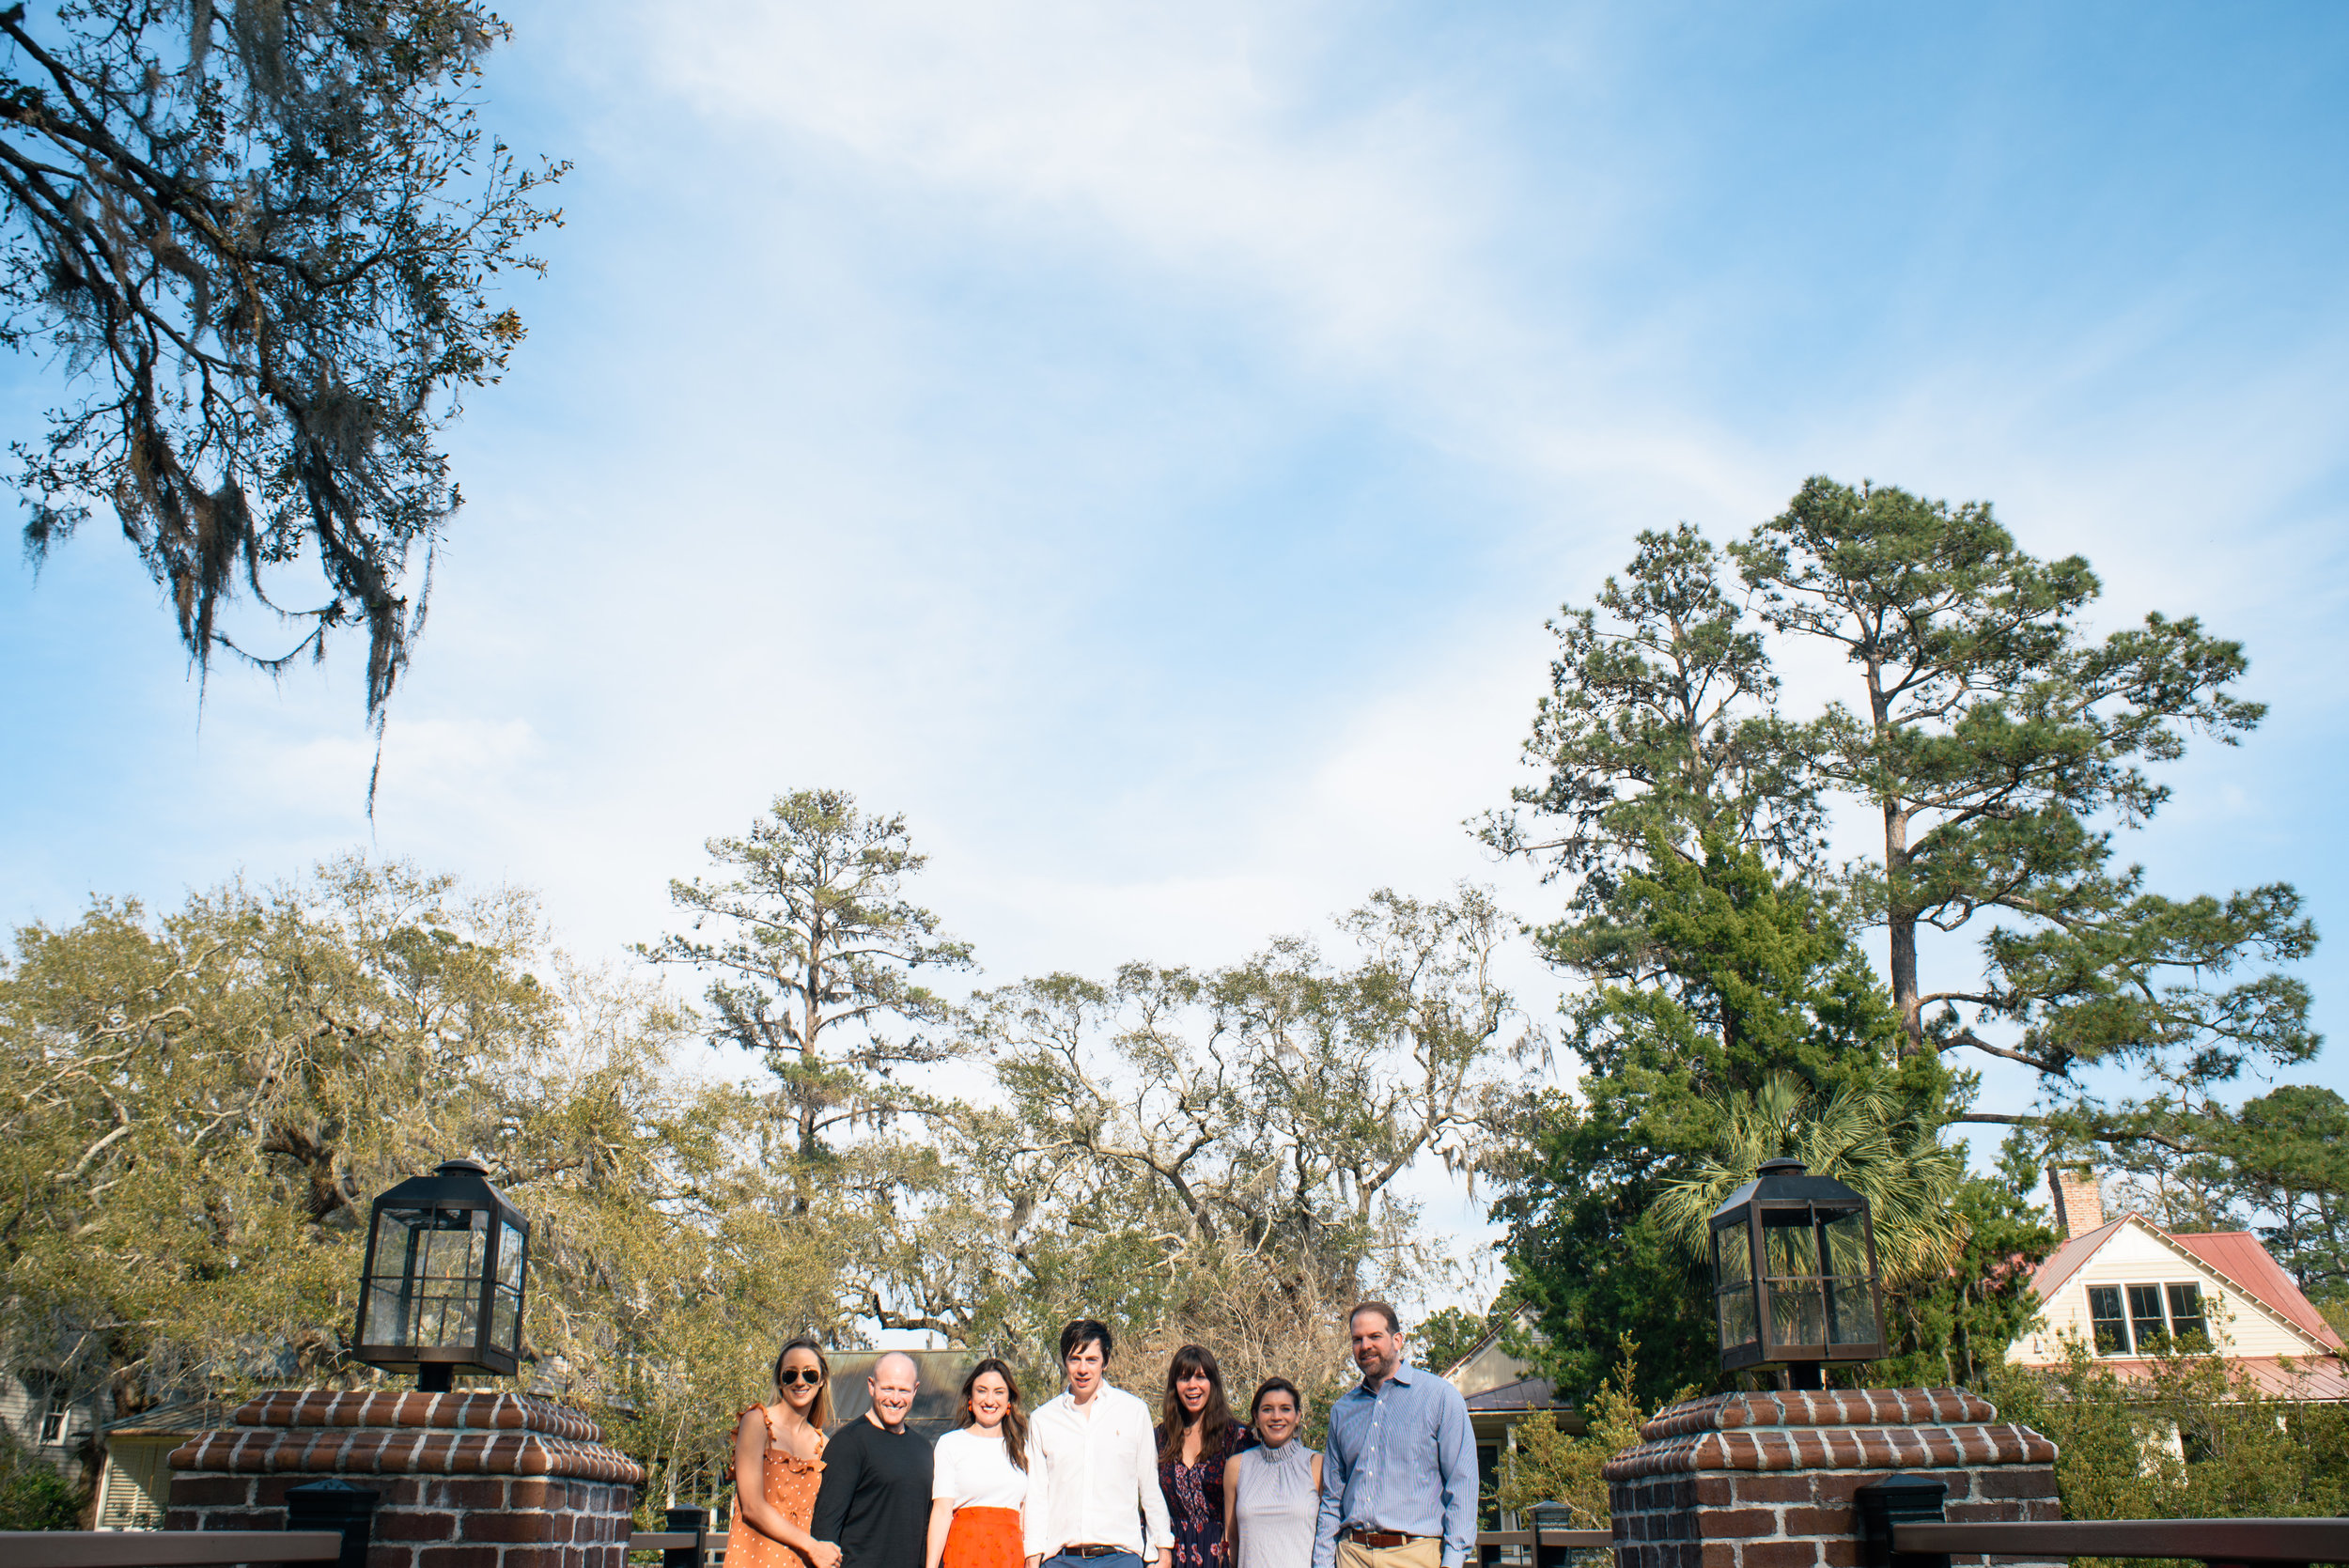 brooke-pollard-bluffton-flytographer-savannah-georgia (38 of 83).jpg